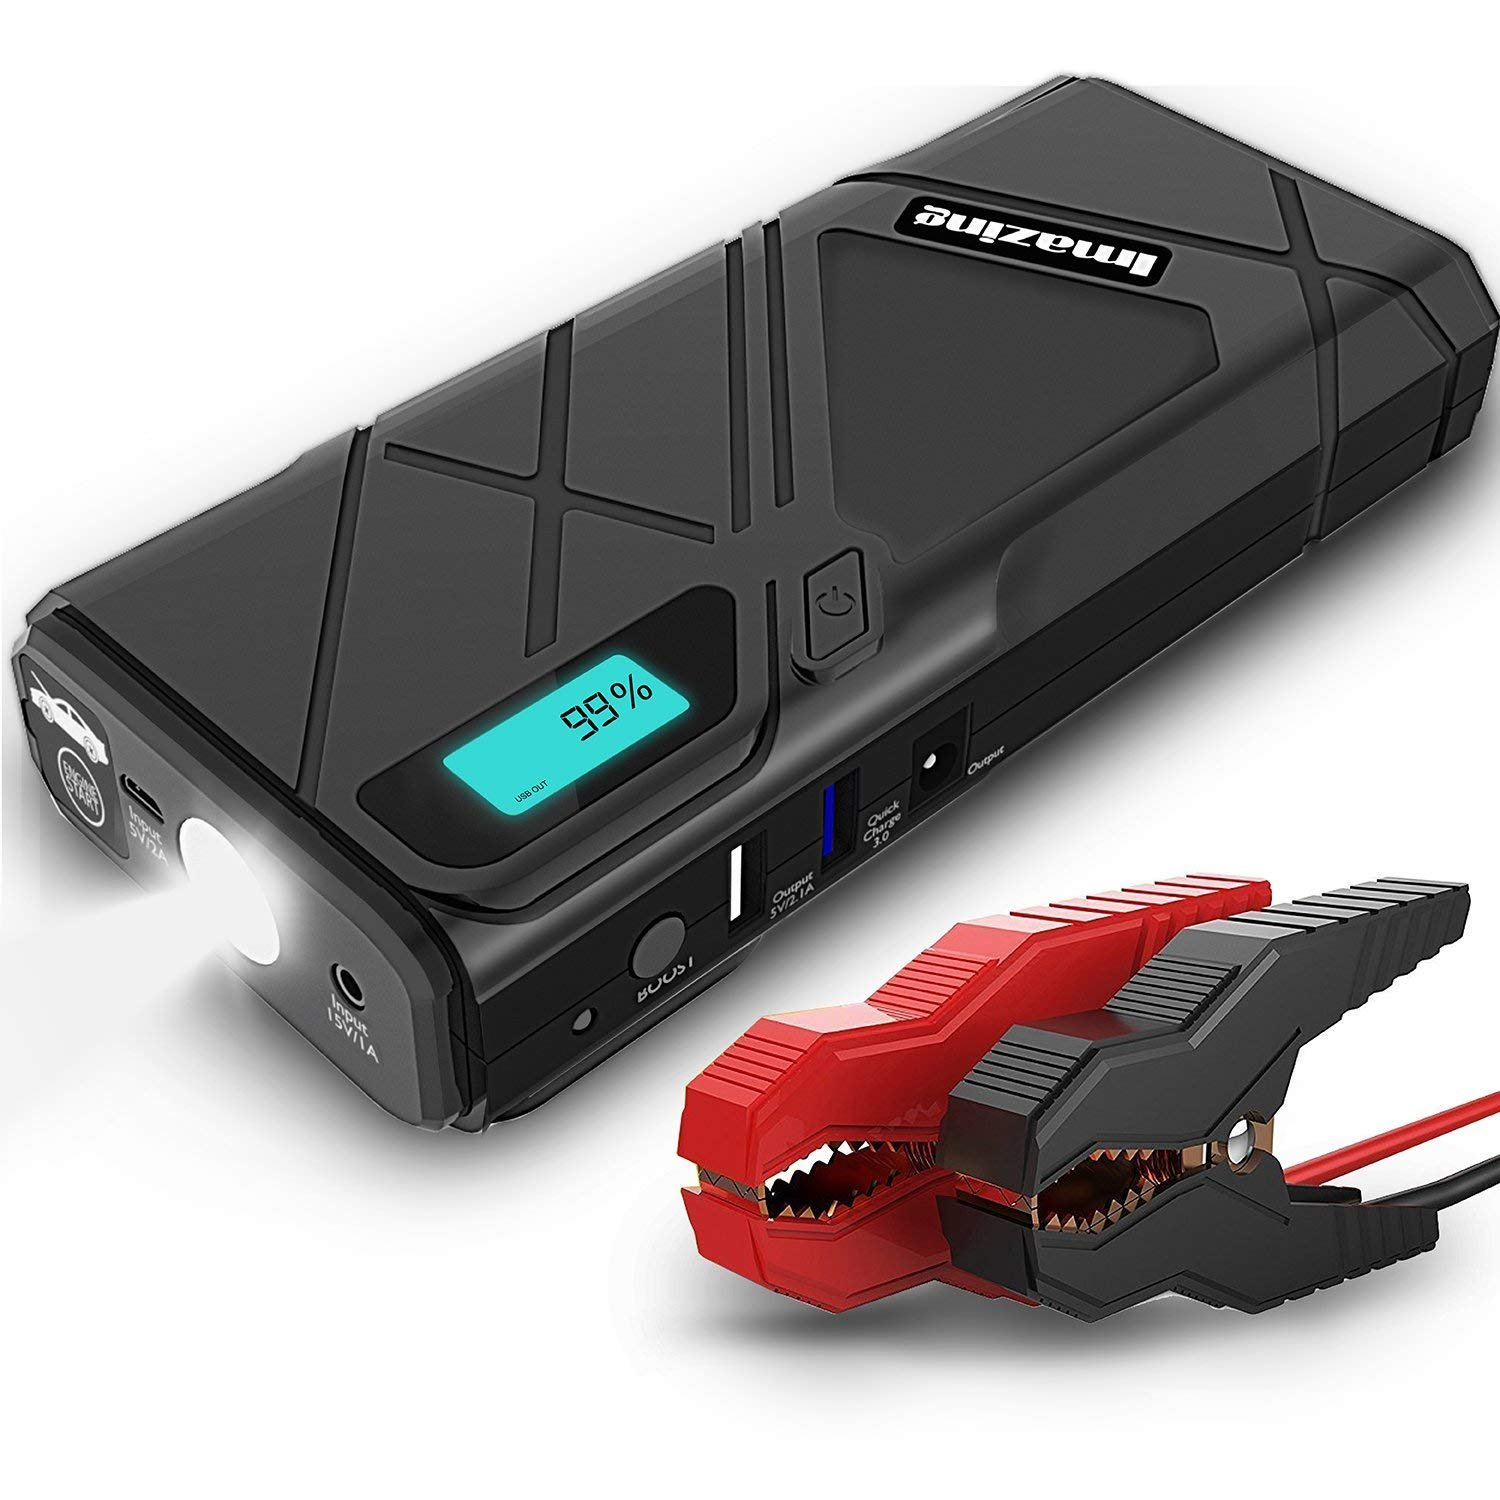 Imazing Portable Car Jump Starter - 1500A Peak 12000mAH (Up to 8L Gas or 6L Diesel Engine) 12V Auto Battery Booster Portable Power Pack with Car Portable Battery Jump Leads